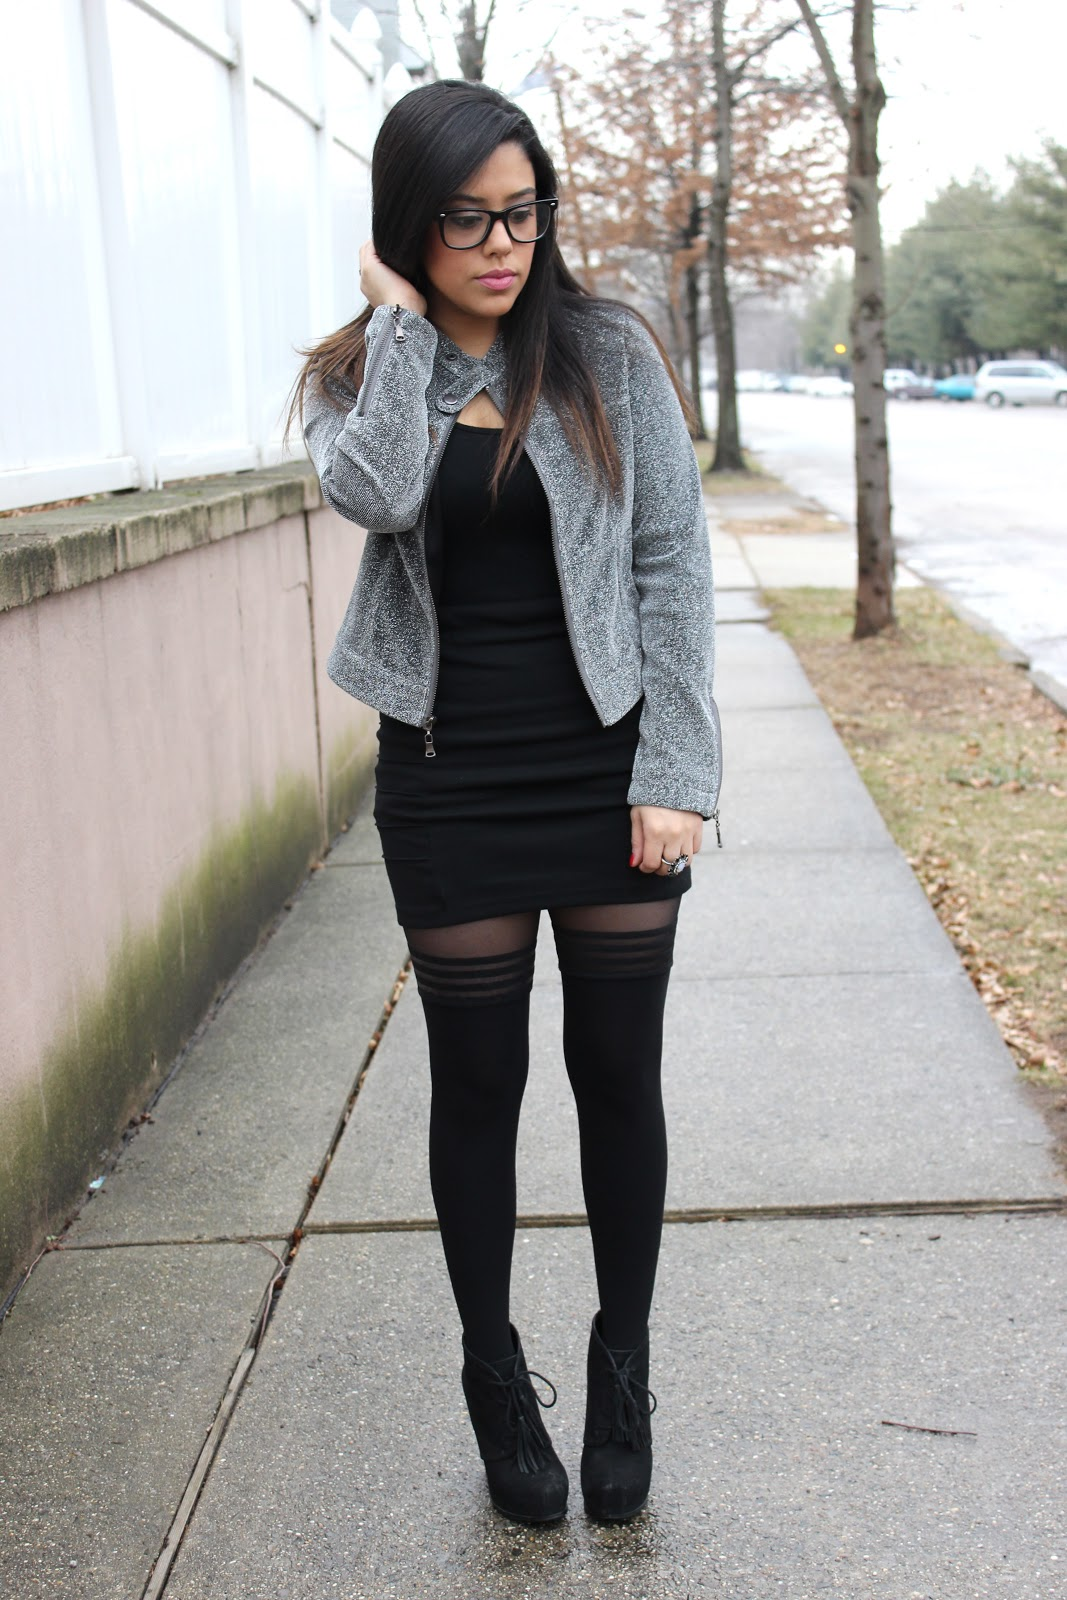 Buy High Thigh socks outfit pictures trends